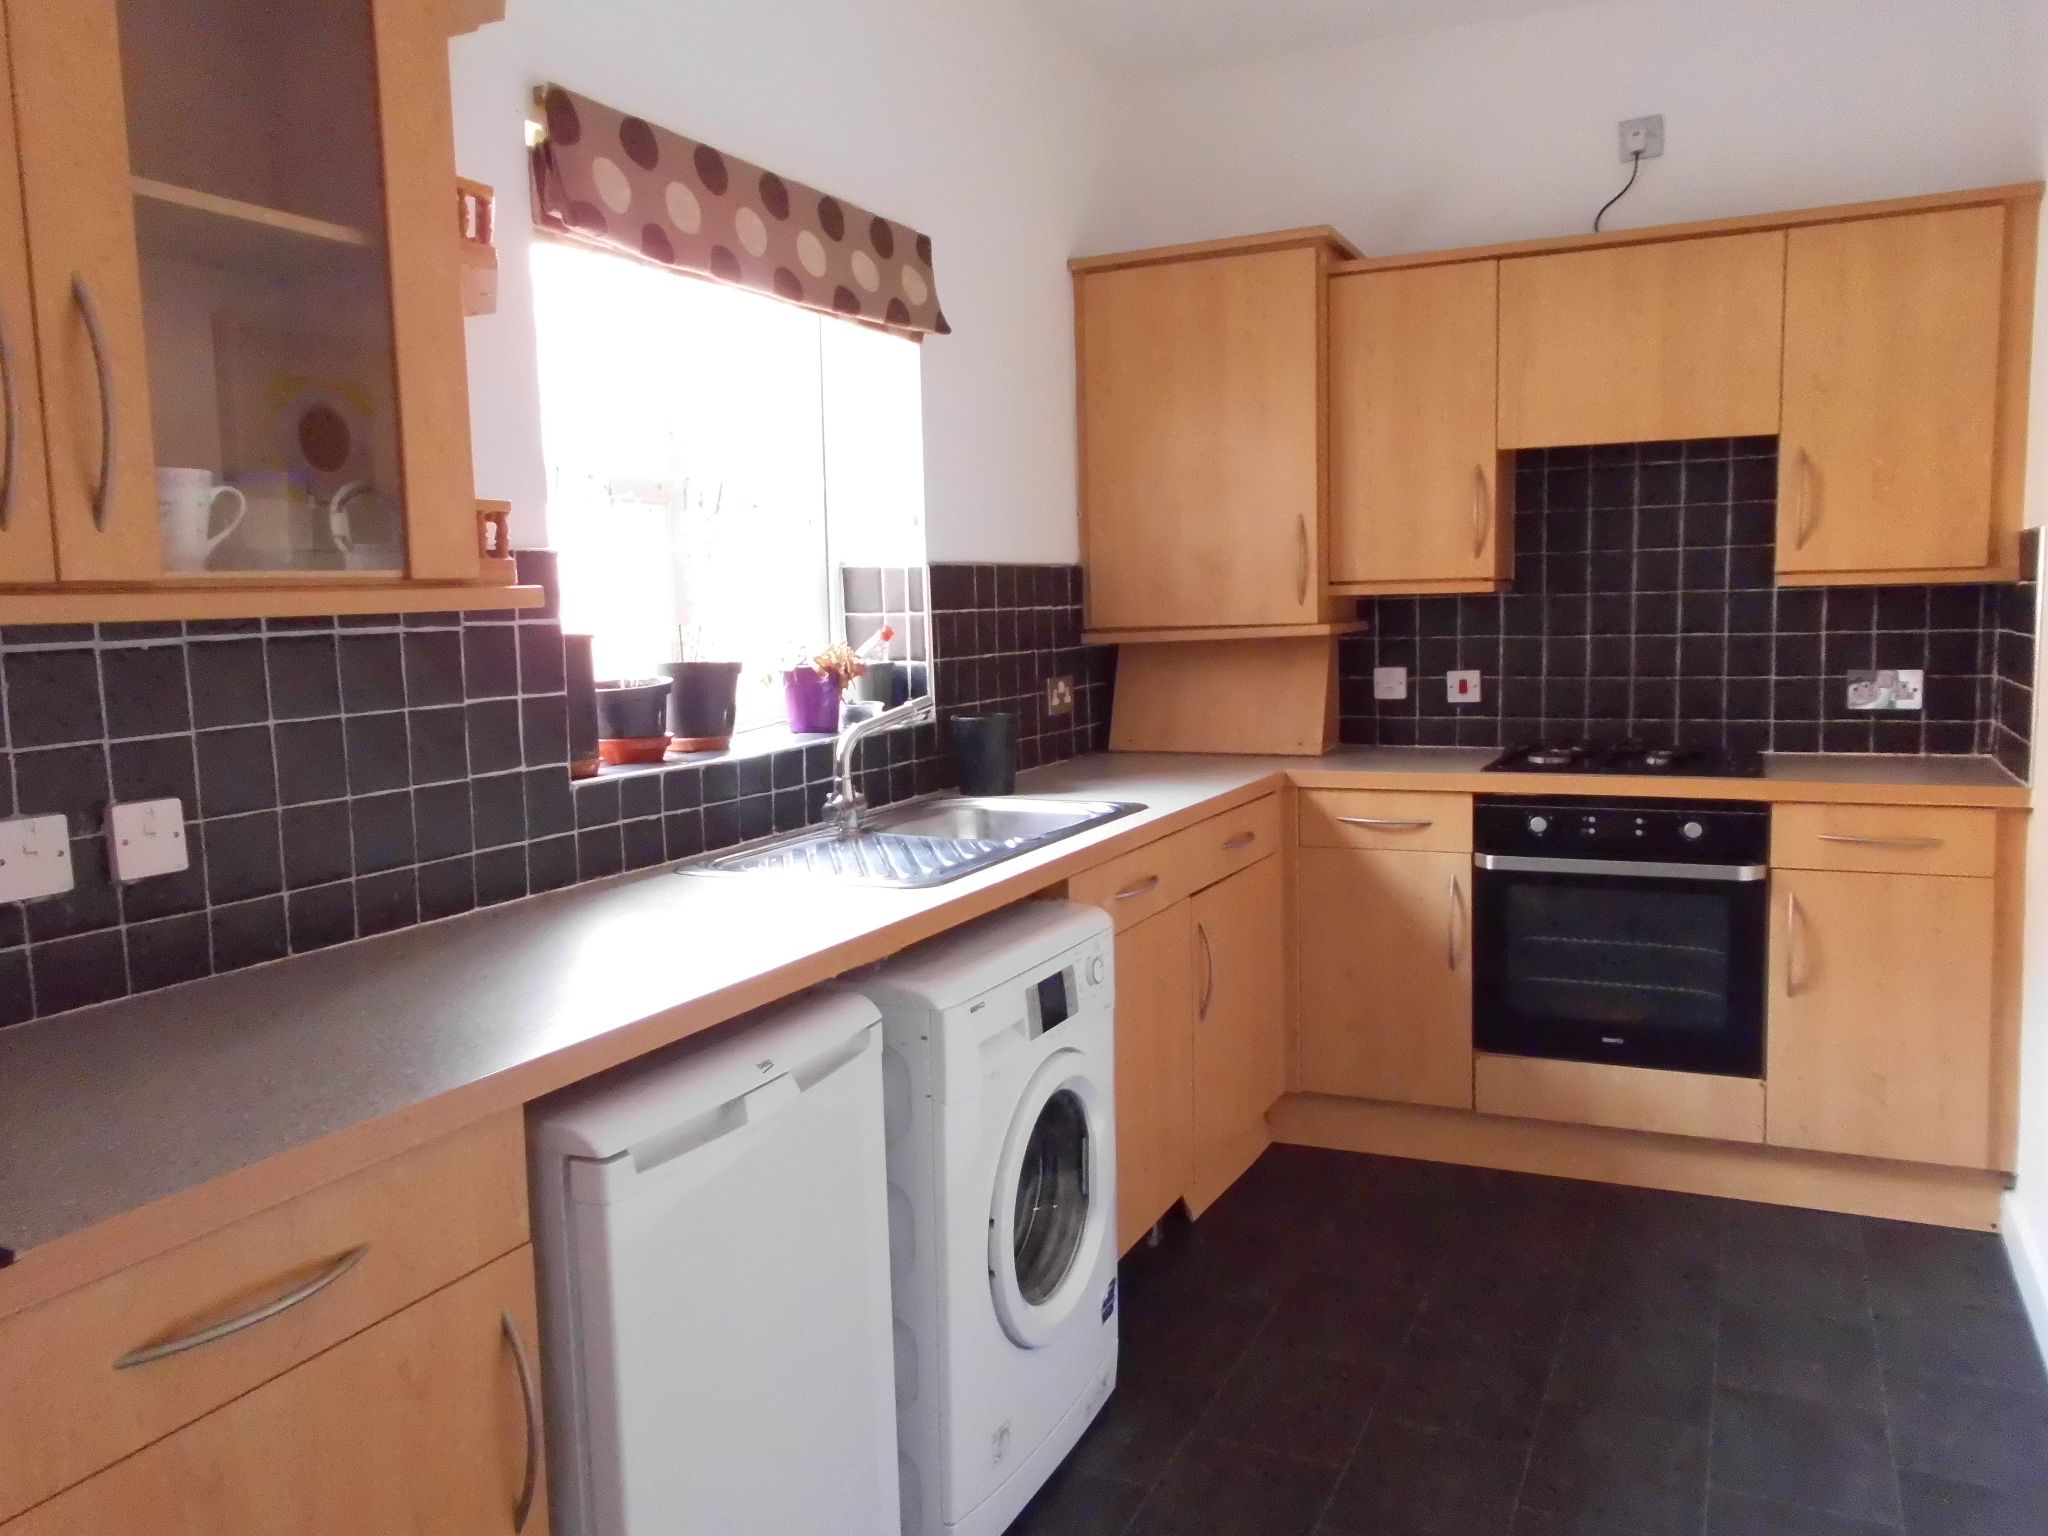 2 bedroom town house For Sale in Leicester - Photograph 4.